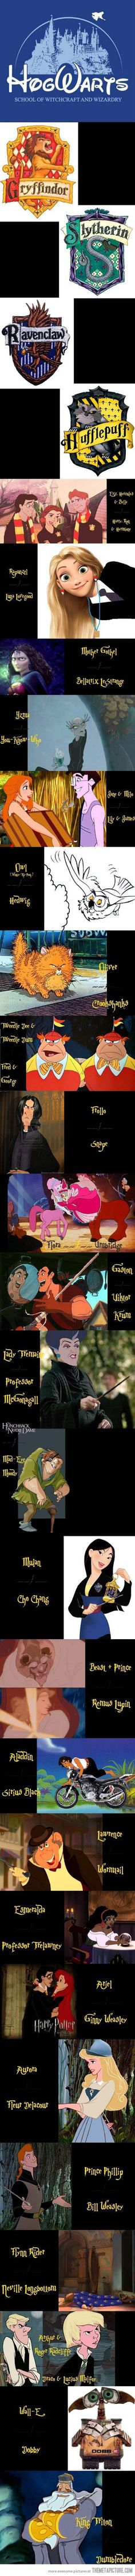 If Harry Potter was made by Disney… This is actually amazing x